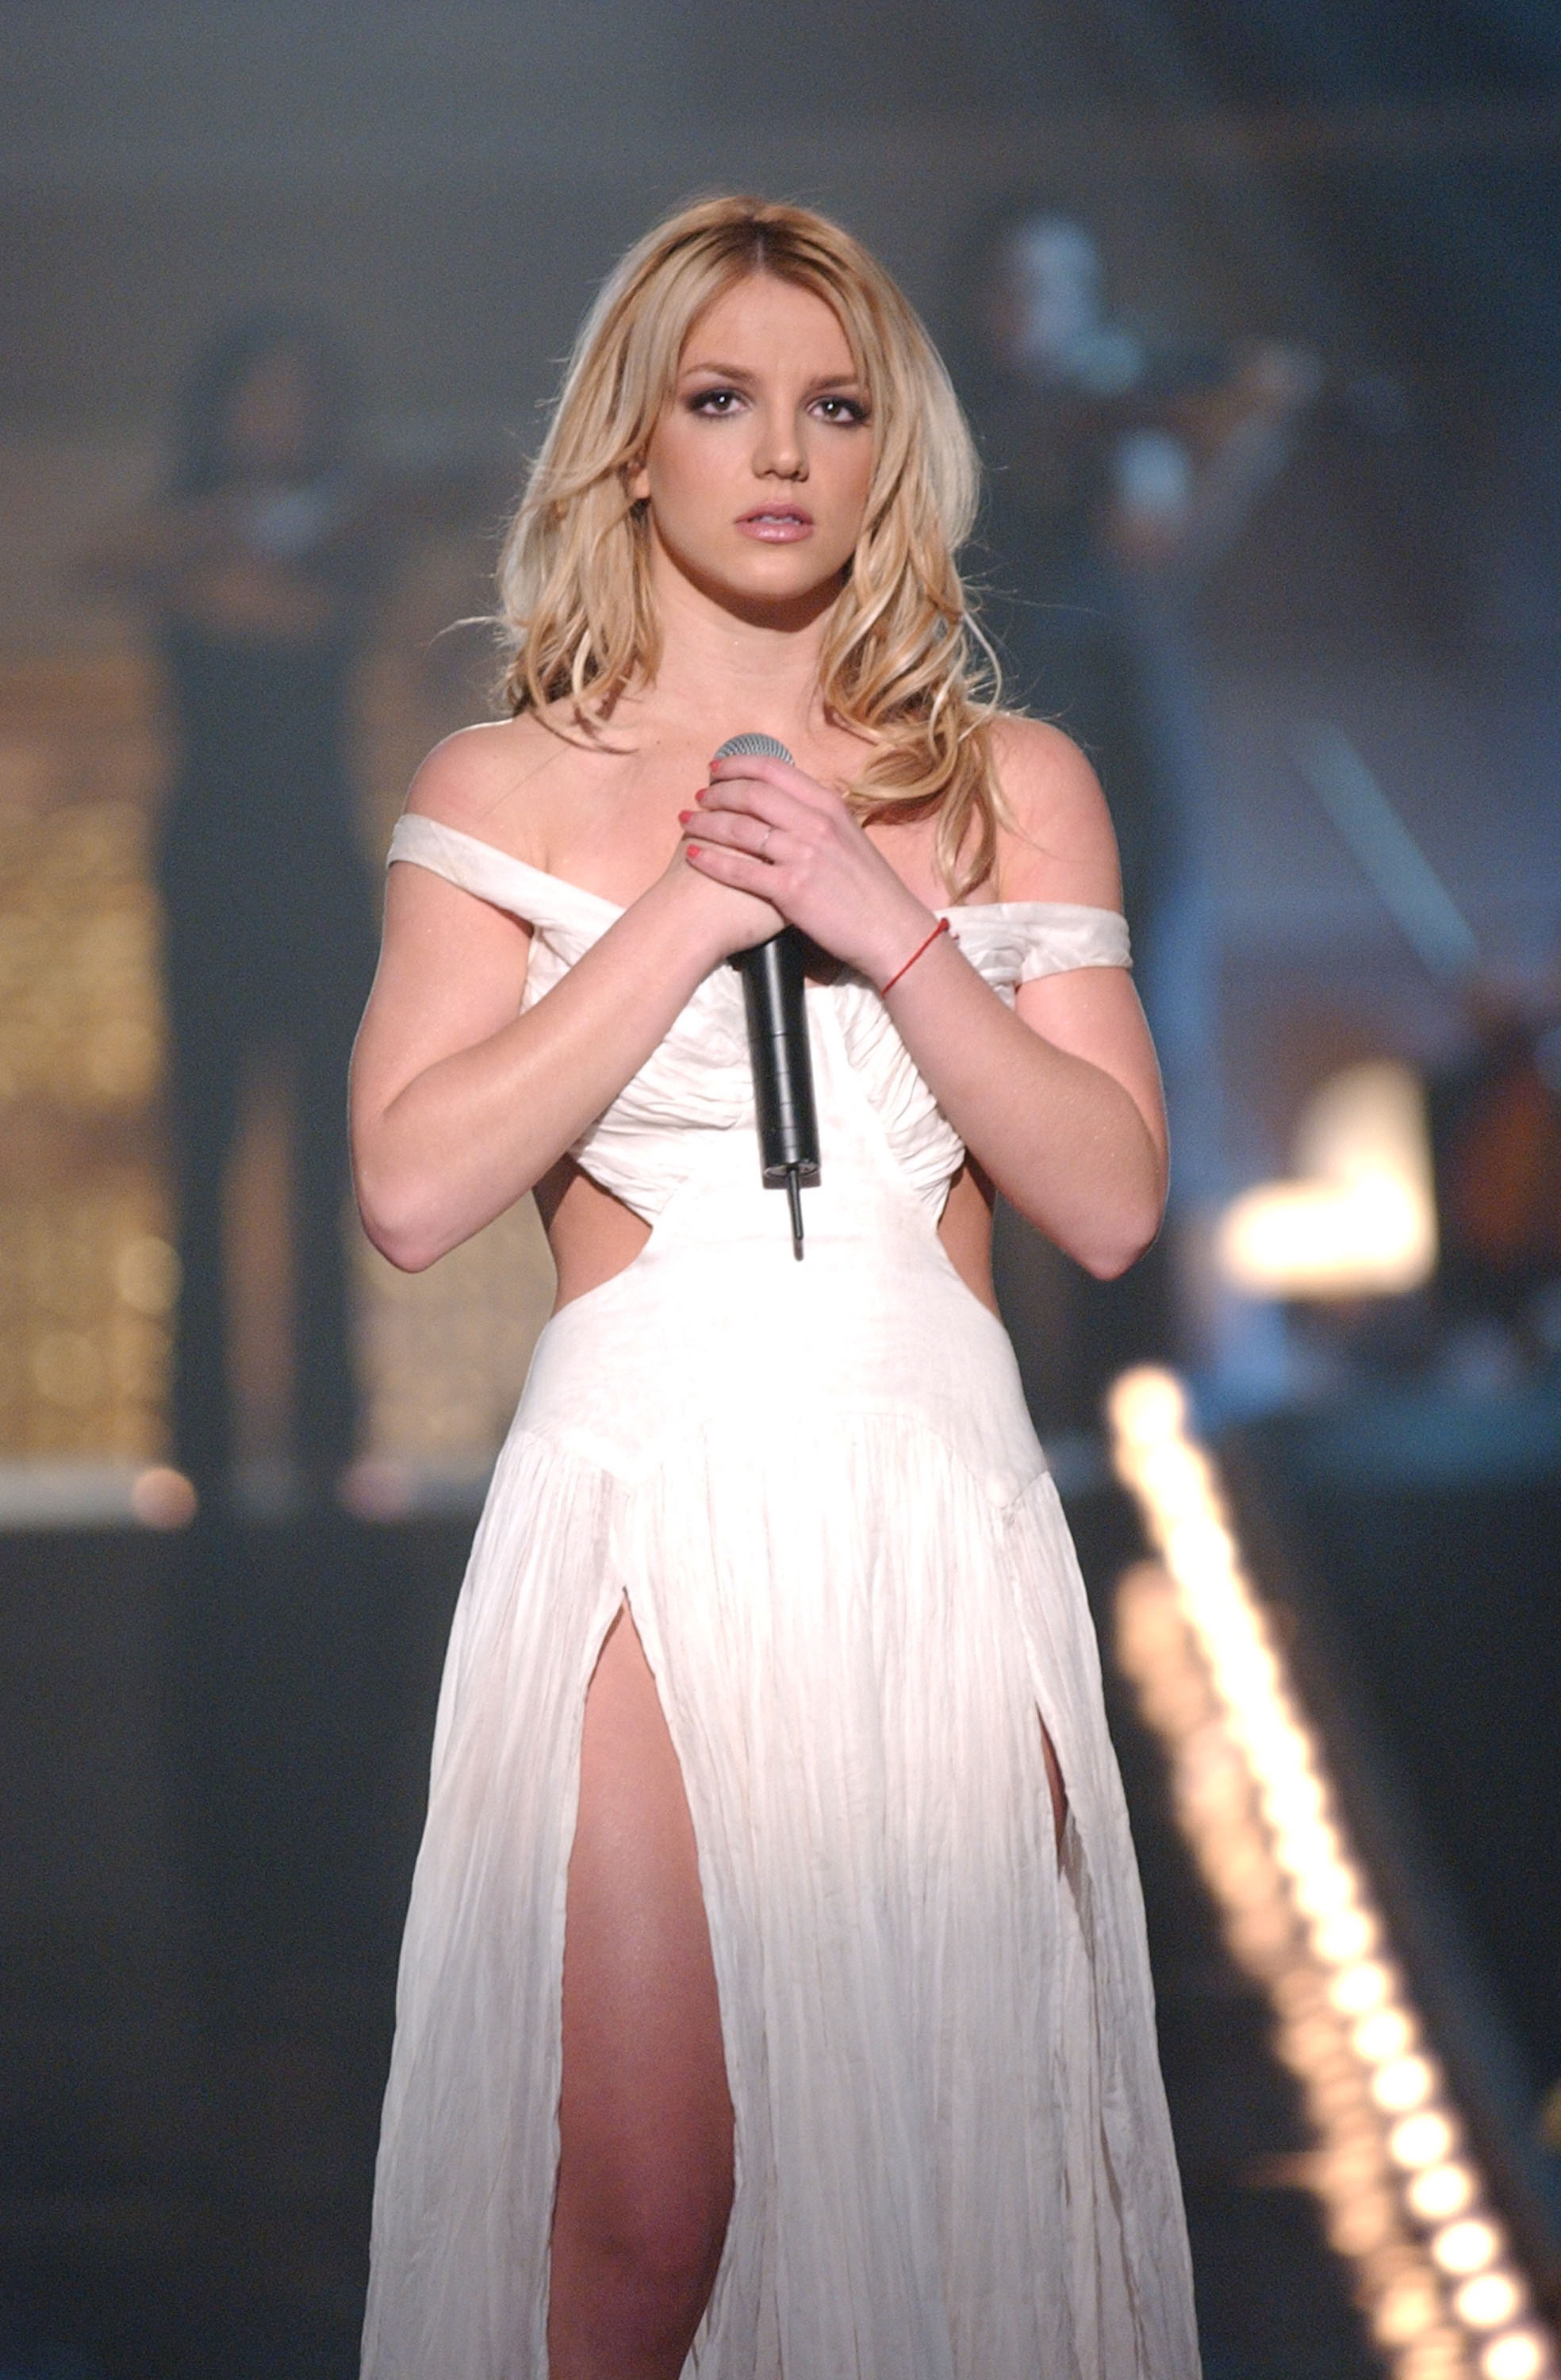 search britneyspears singer jordan sparks was too awestruck to talk to britney spears